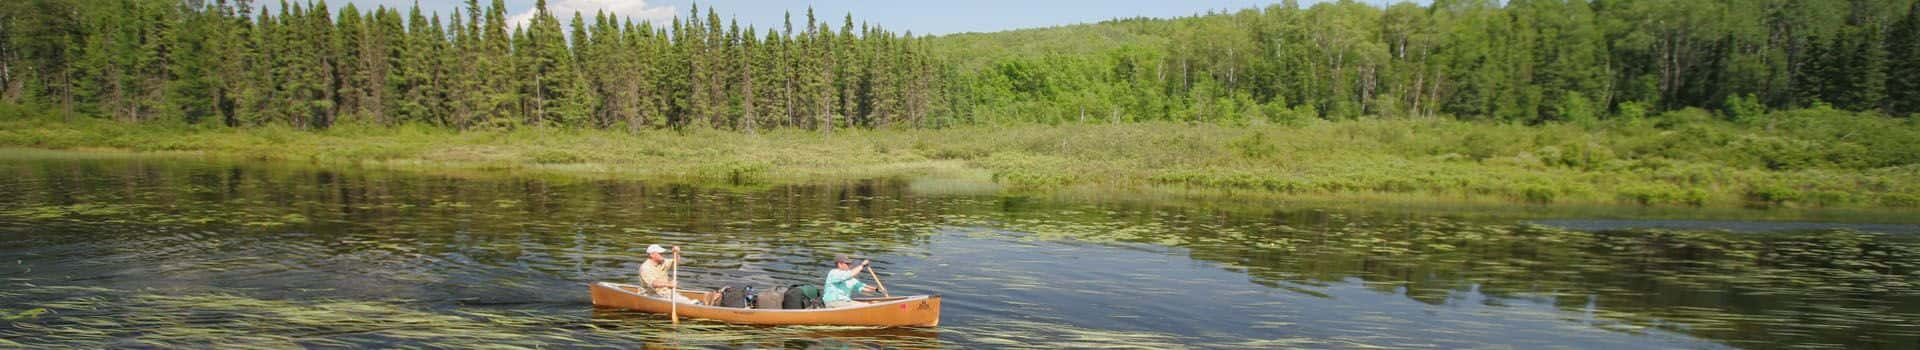 Boundary-Waters-Canoe-Guide-Services